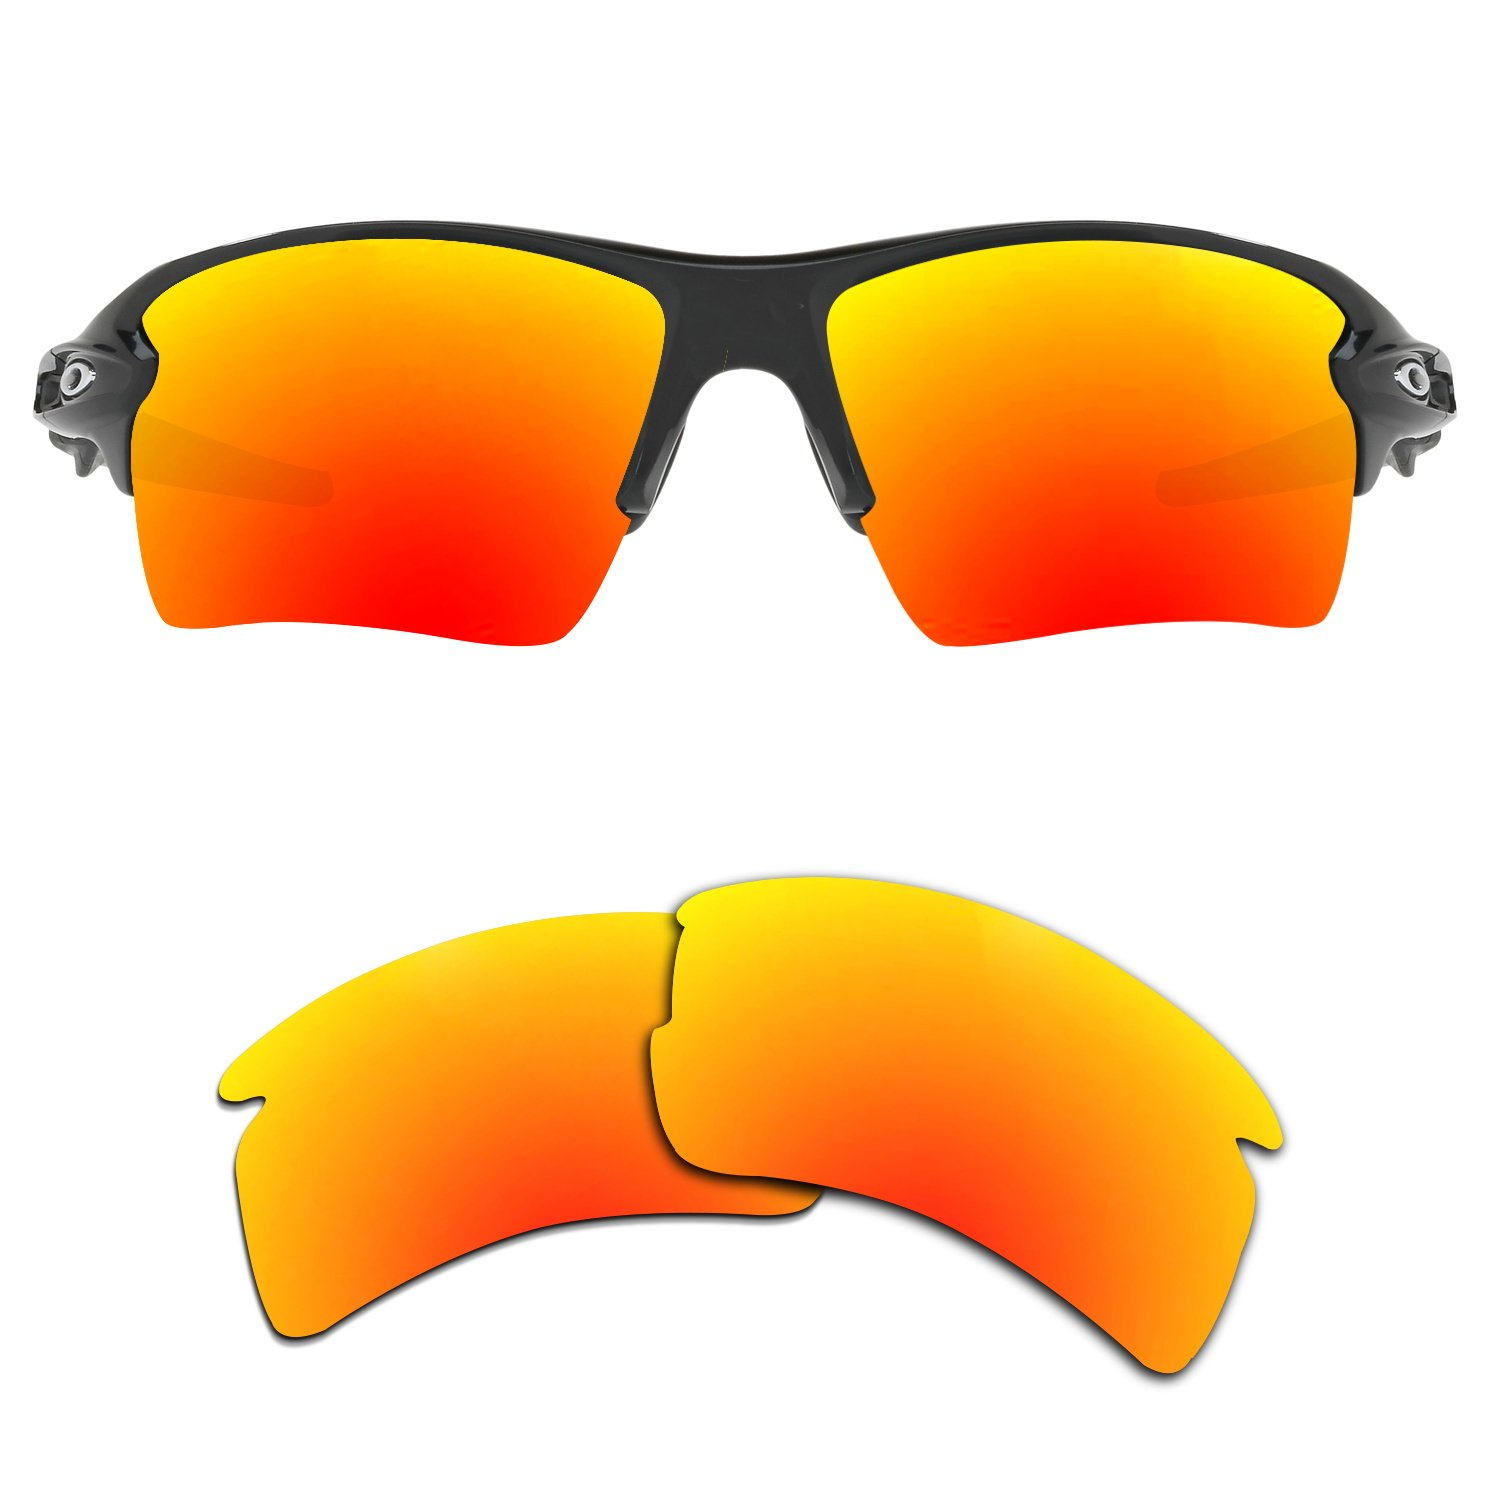 Kygear Replacement Lenses Different Colors for Oakley Flak 2.0 XL Sunglass Polarized by Kygear